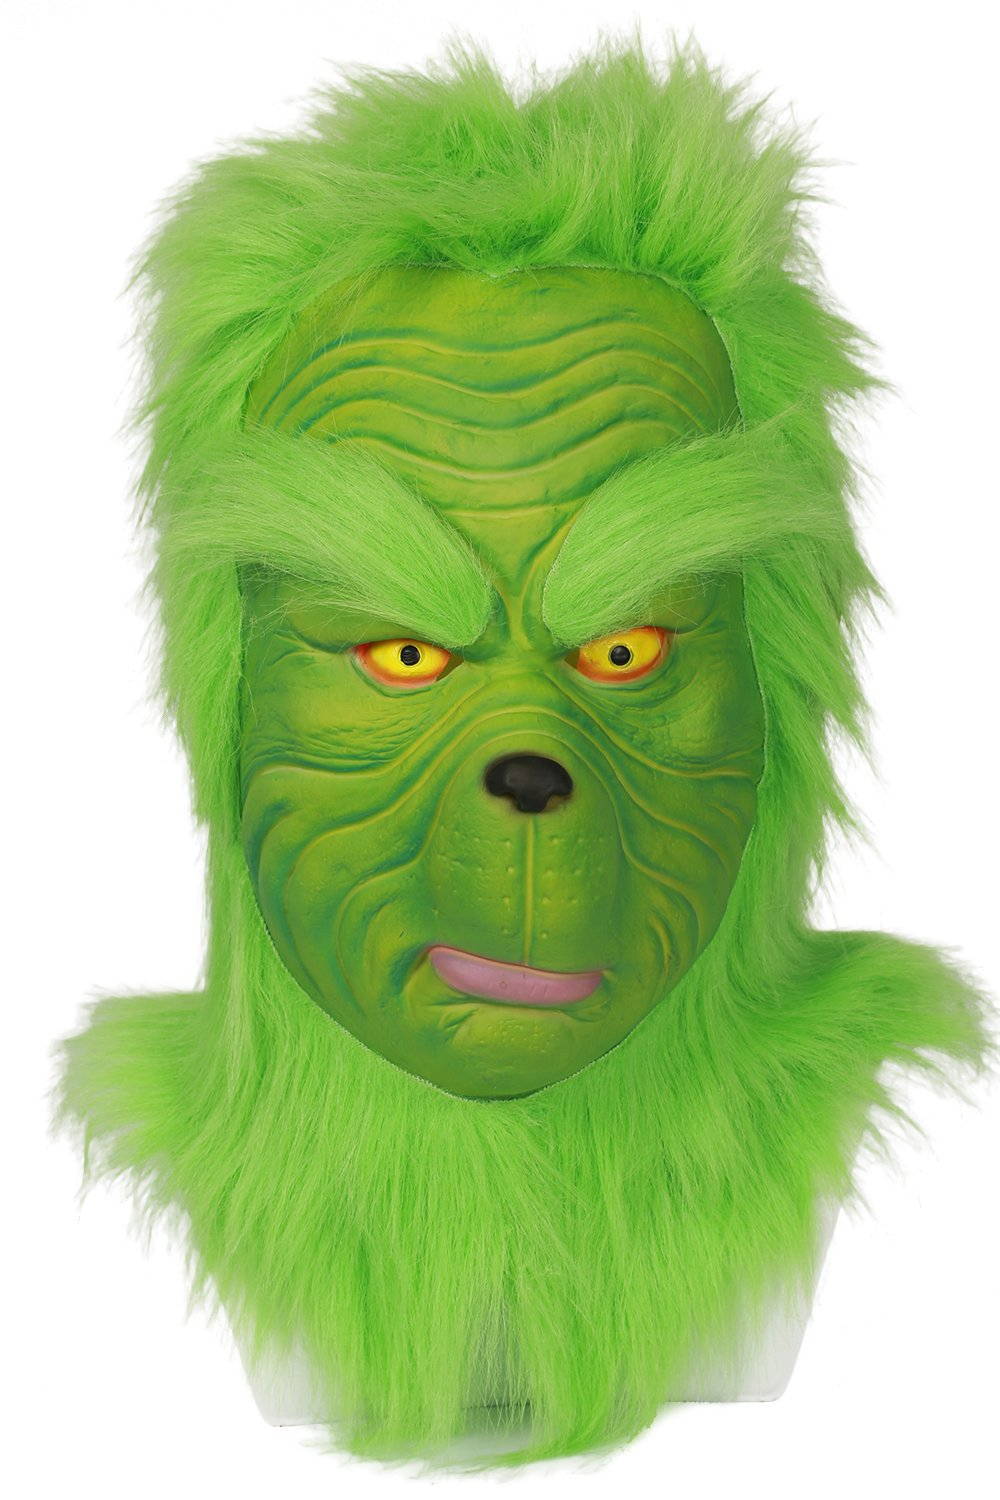 Grinch Maske Halloween Helm Kostüm Cosplay Erwachsenen Grün Latex Masken Fancy Dress Merchandise Zubehör